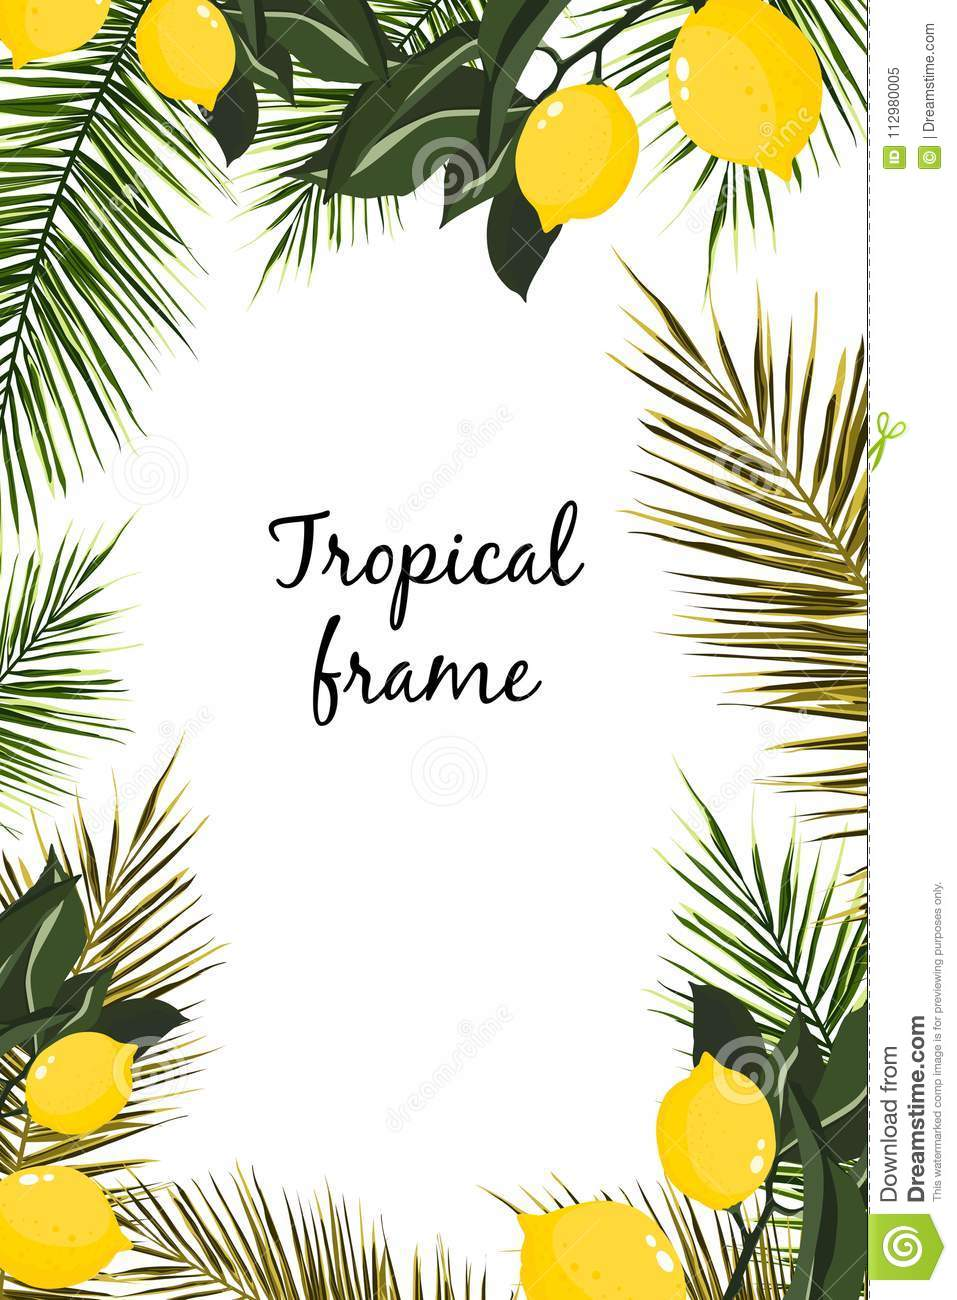 Hand drawn branches and leaves of tropical plants. Natural green background with space for text.